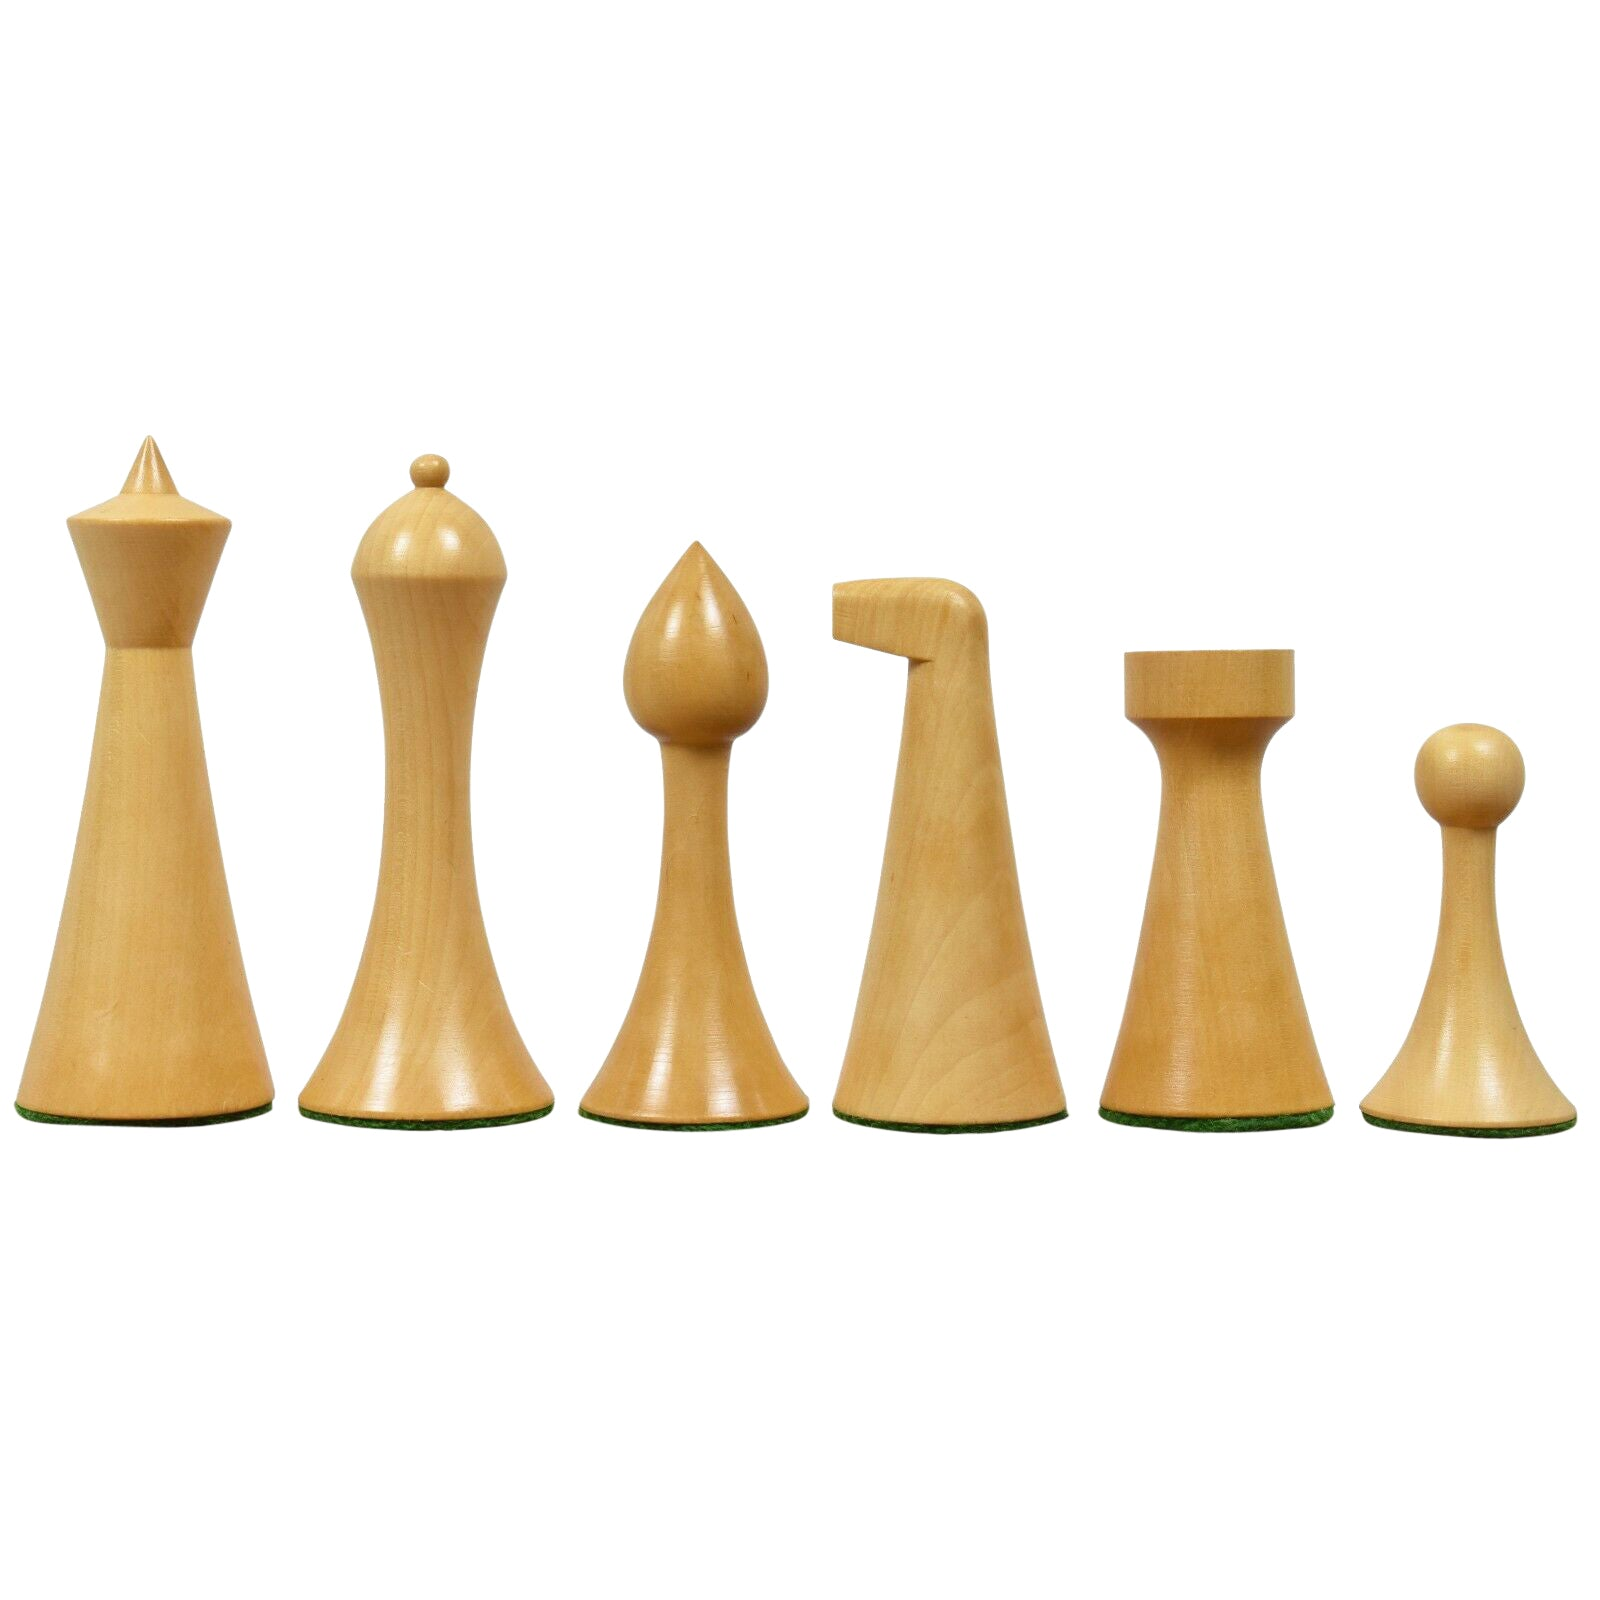 How to match Chess Pieces and Board Sizes